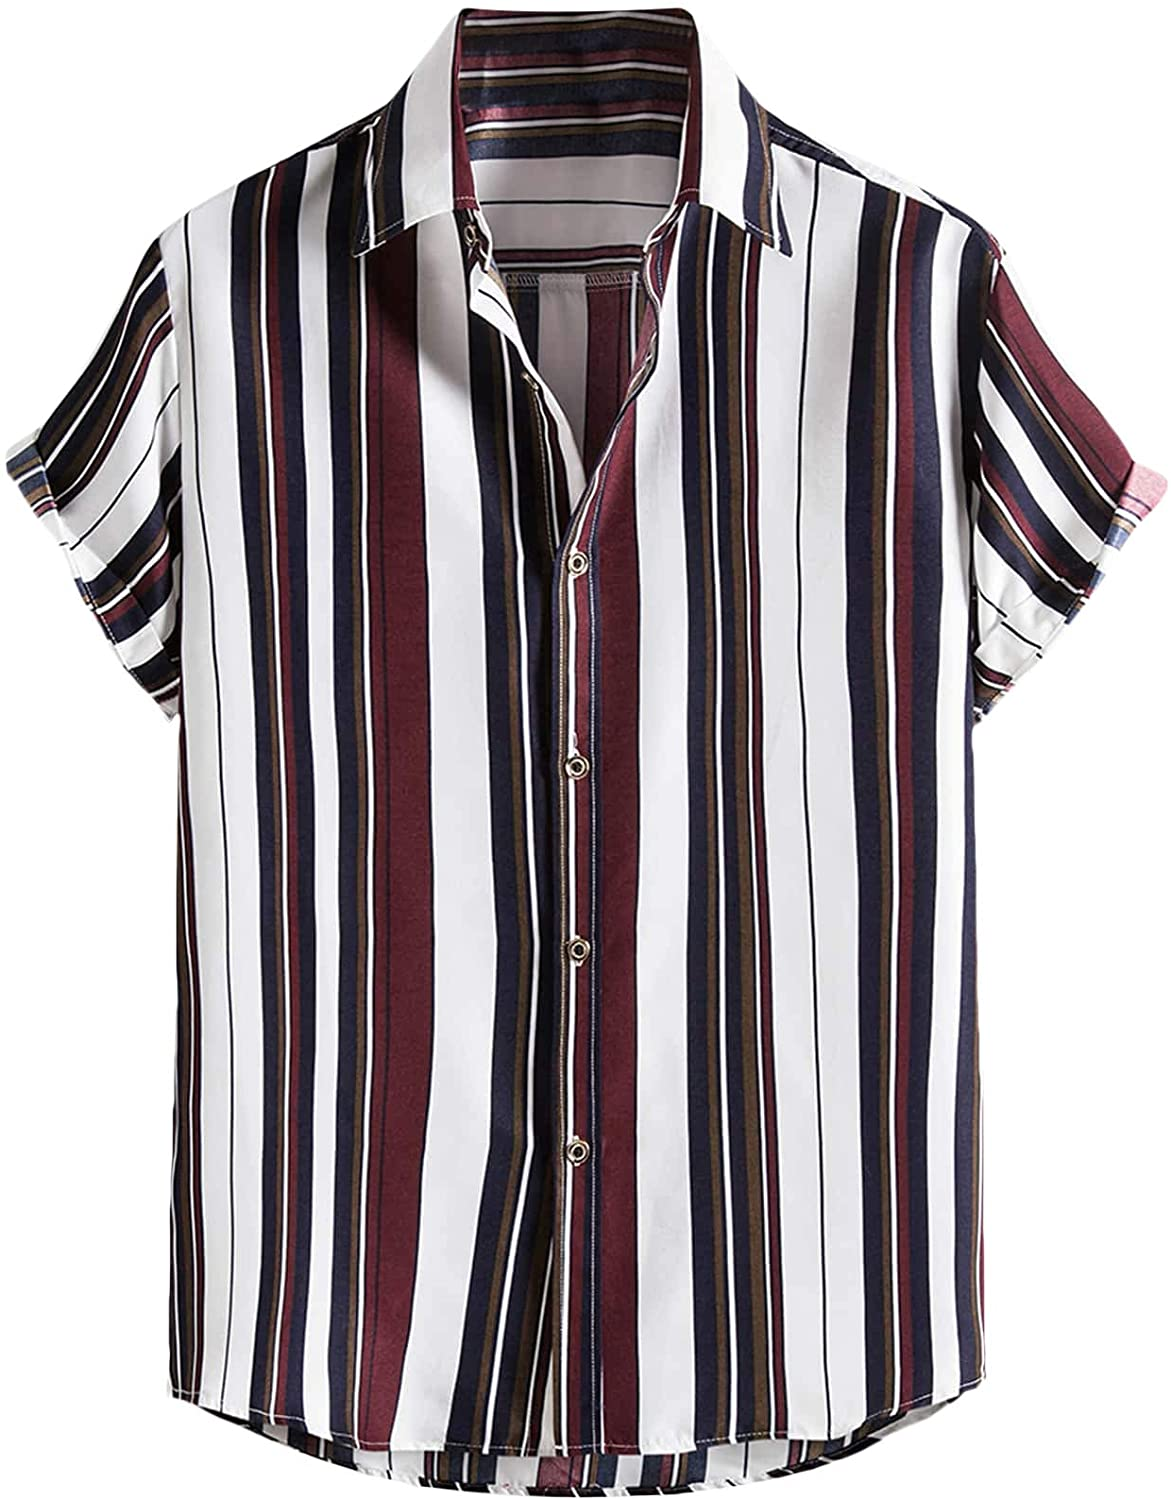 Floerns Men's Striped Shirts Casual Short Sleeve Button Down Shirts